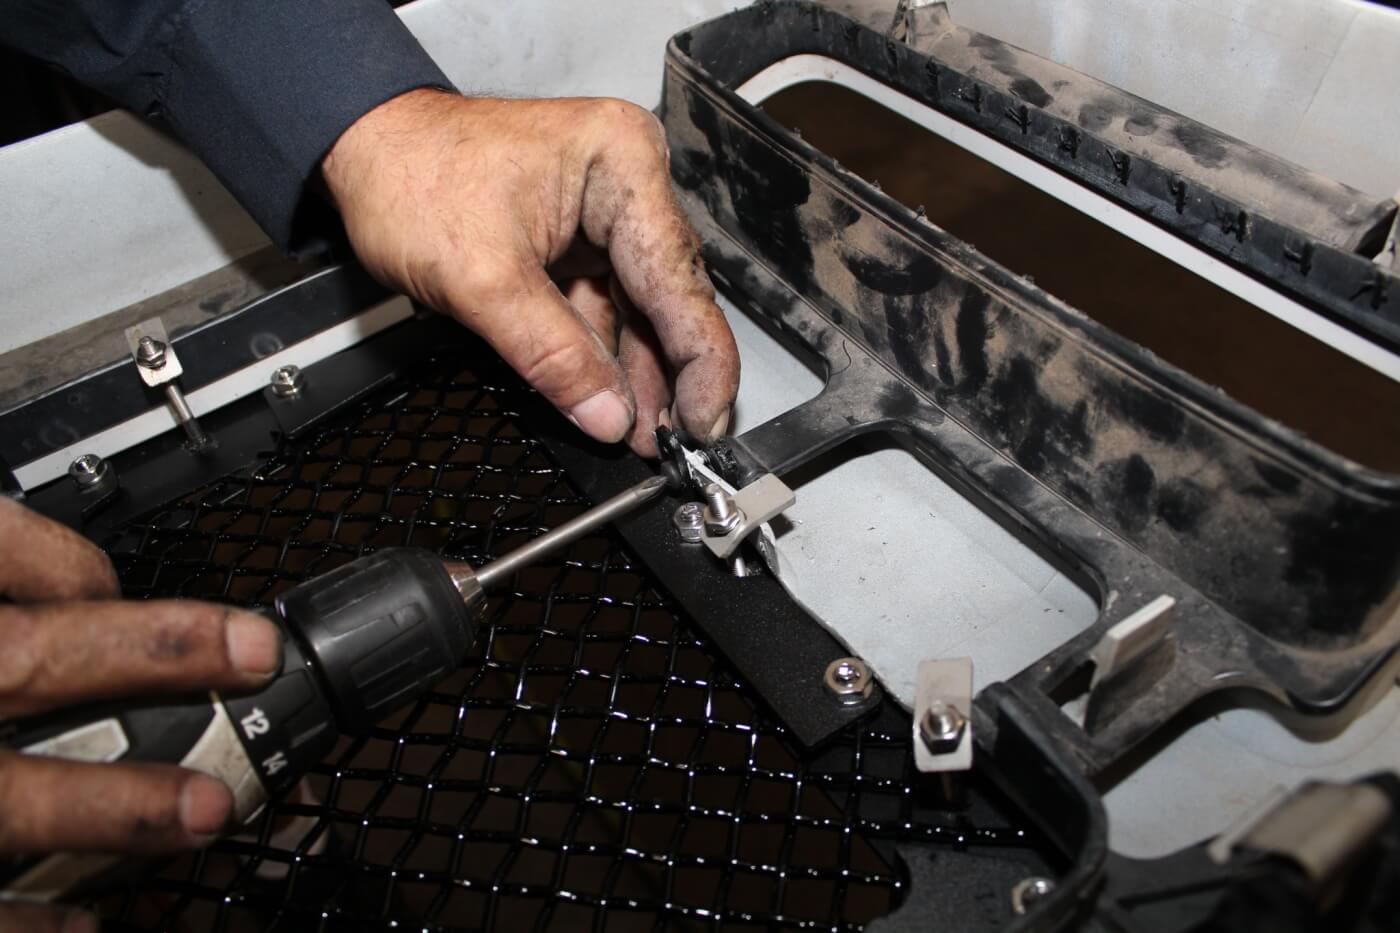 13. In addition to the tabs, the insert attaches to the factory shell using screws and metal tabs that are supplied with the kit. The Royalty Core insert is surprisingly heavy, and using all of the available attachment hardware helps ensure that it stays secure.